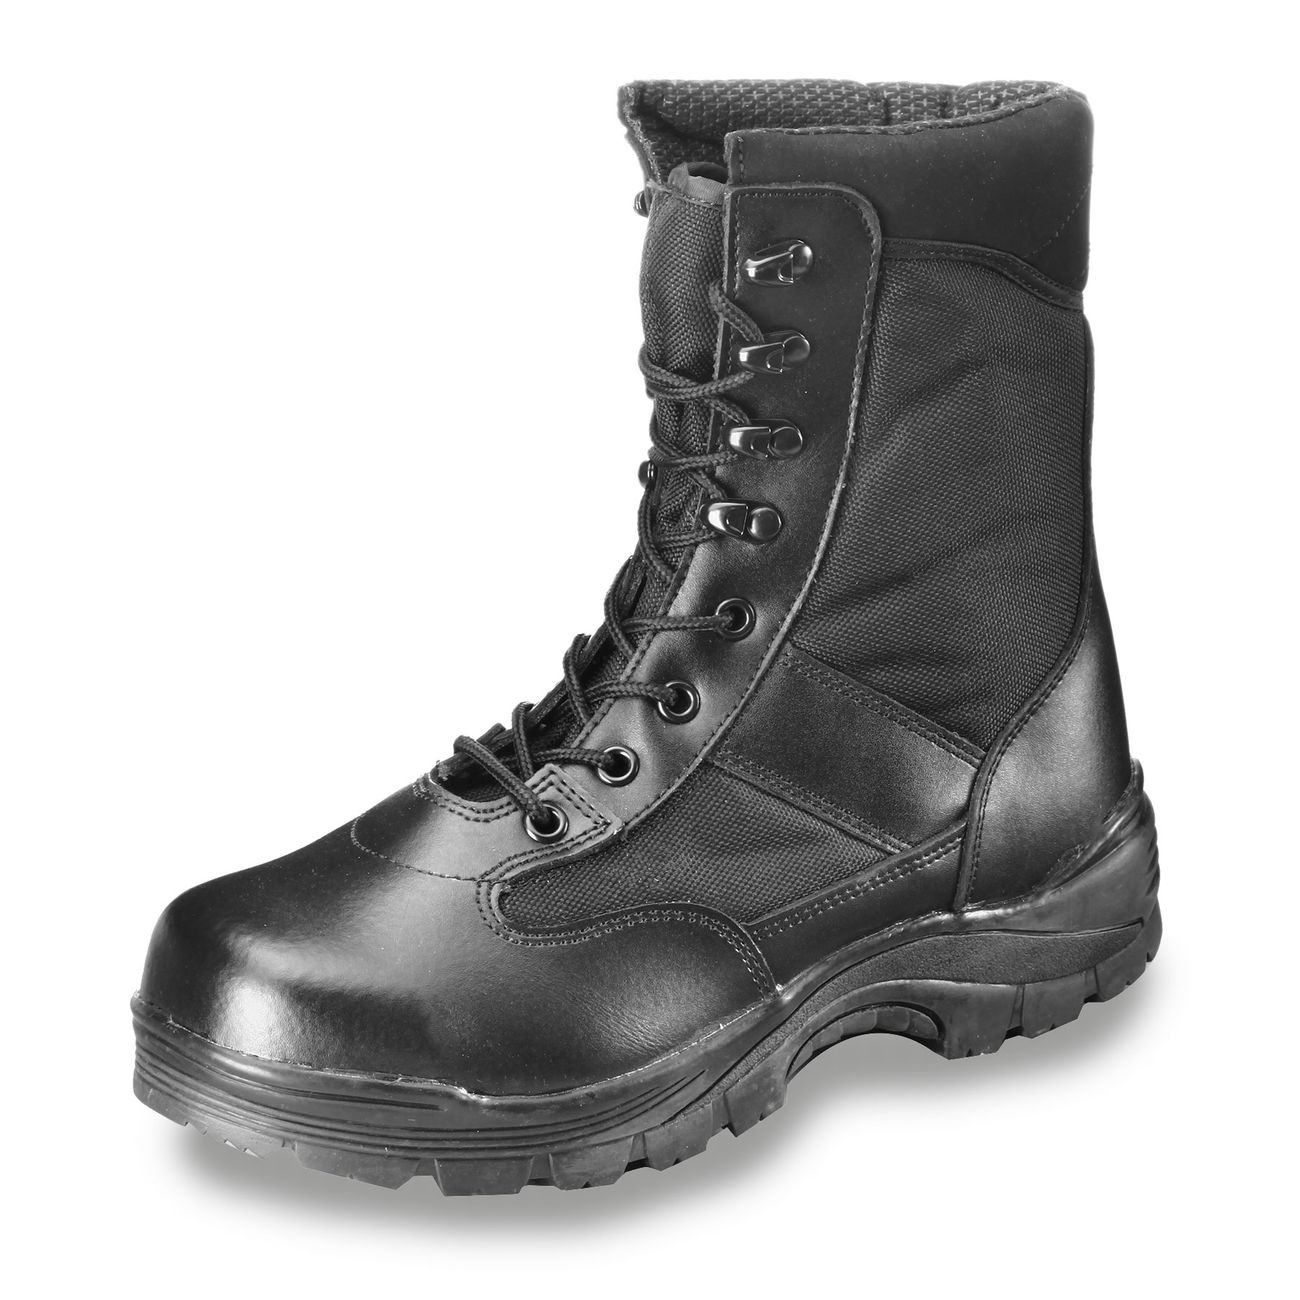 Security Stiefel Boots 8-Loch Mil-Tec 5